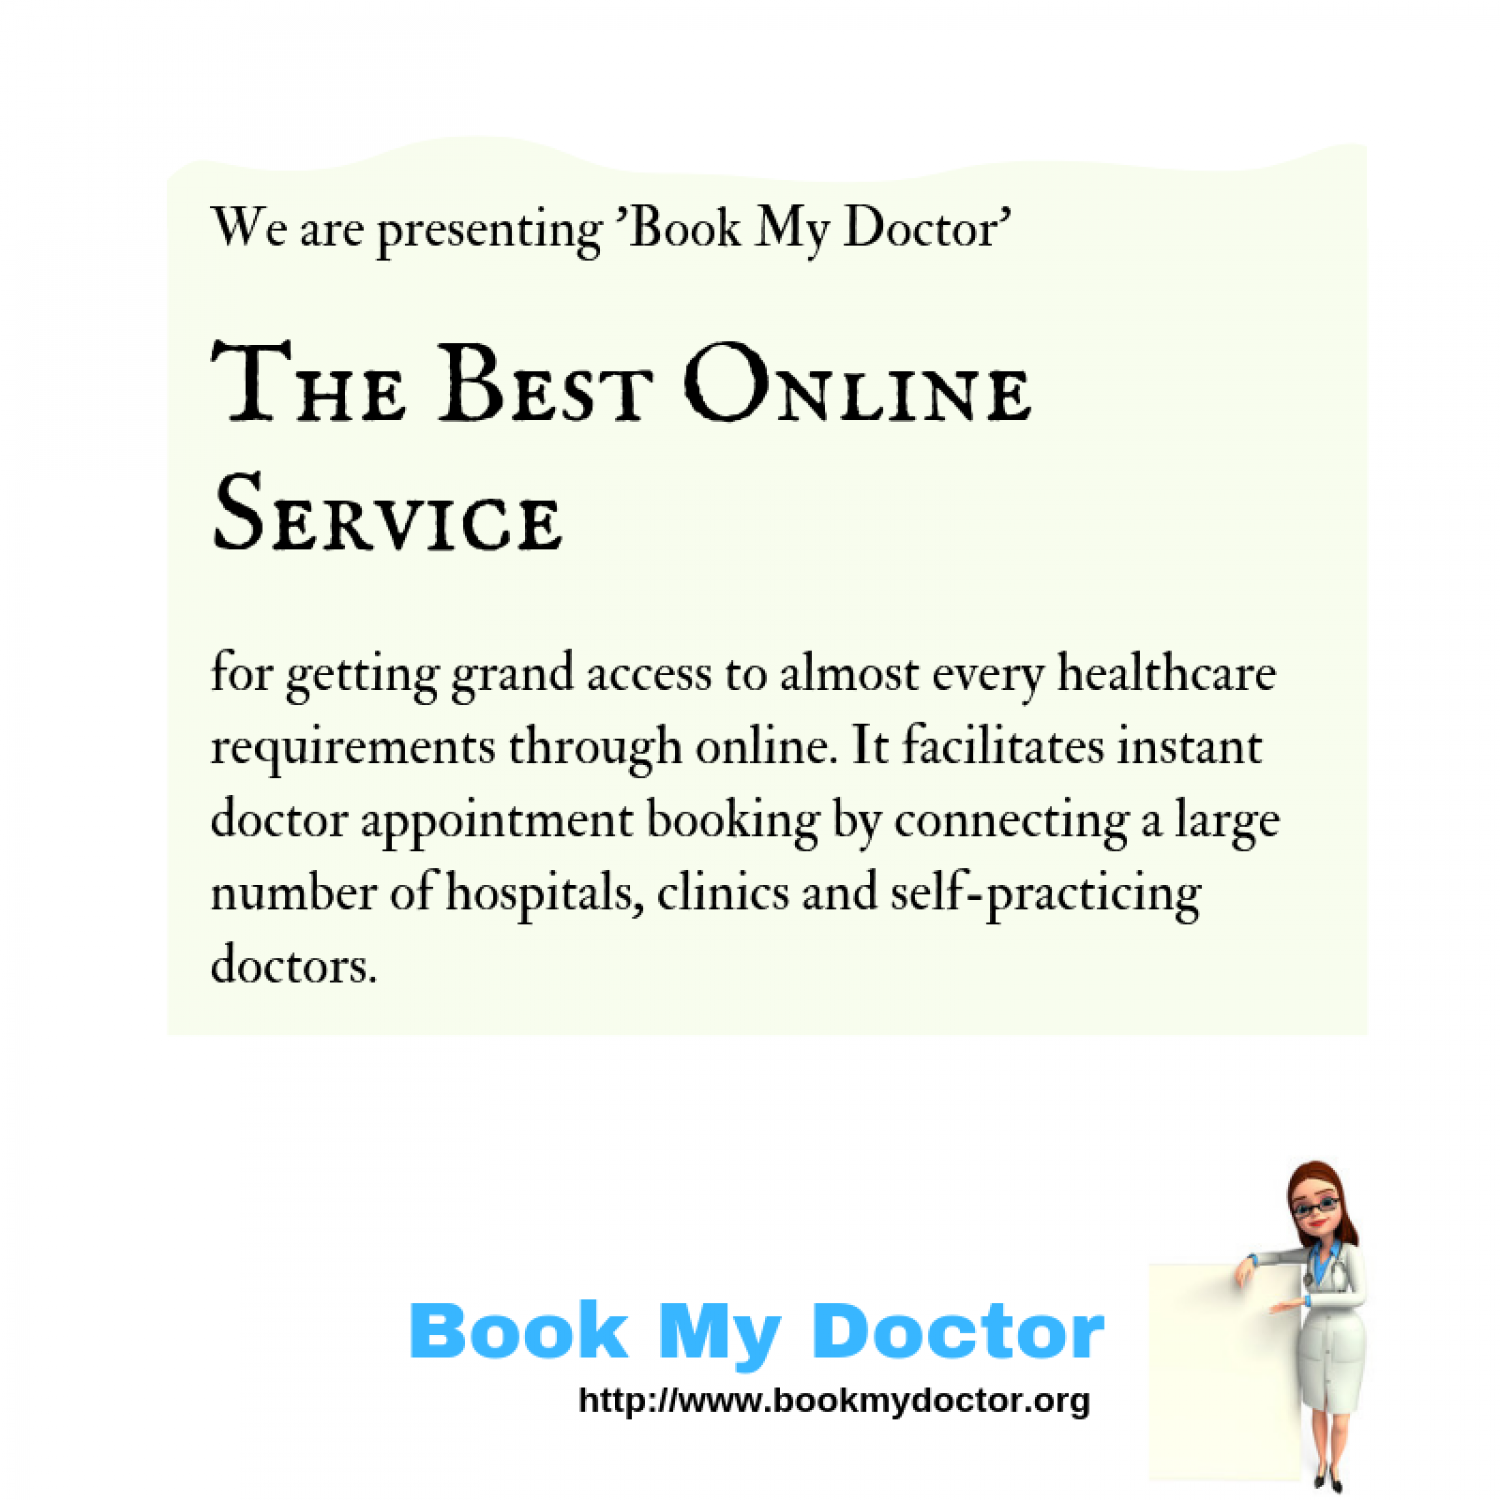 Book My Doctor: The future healthcare Infographic